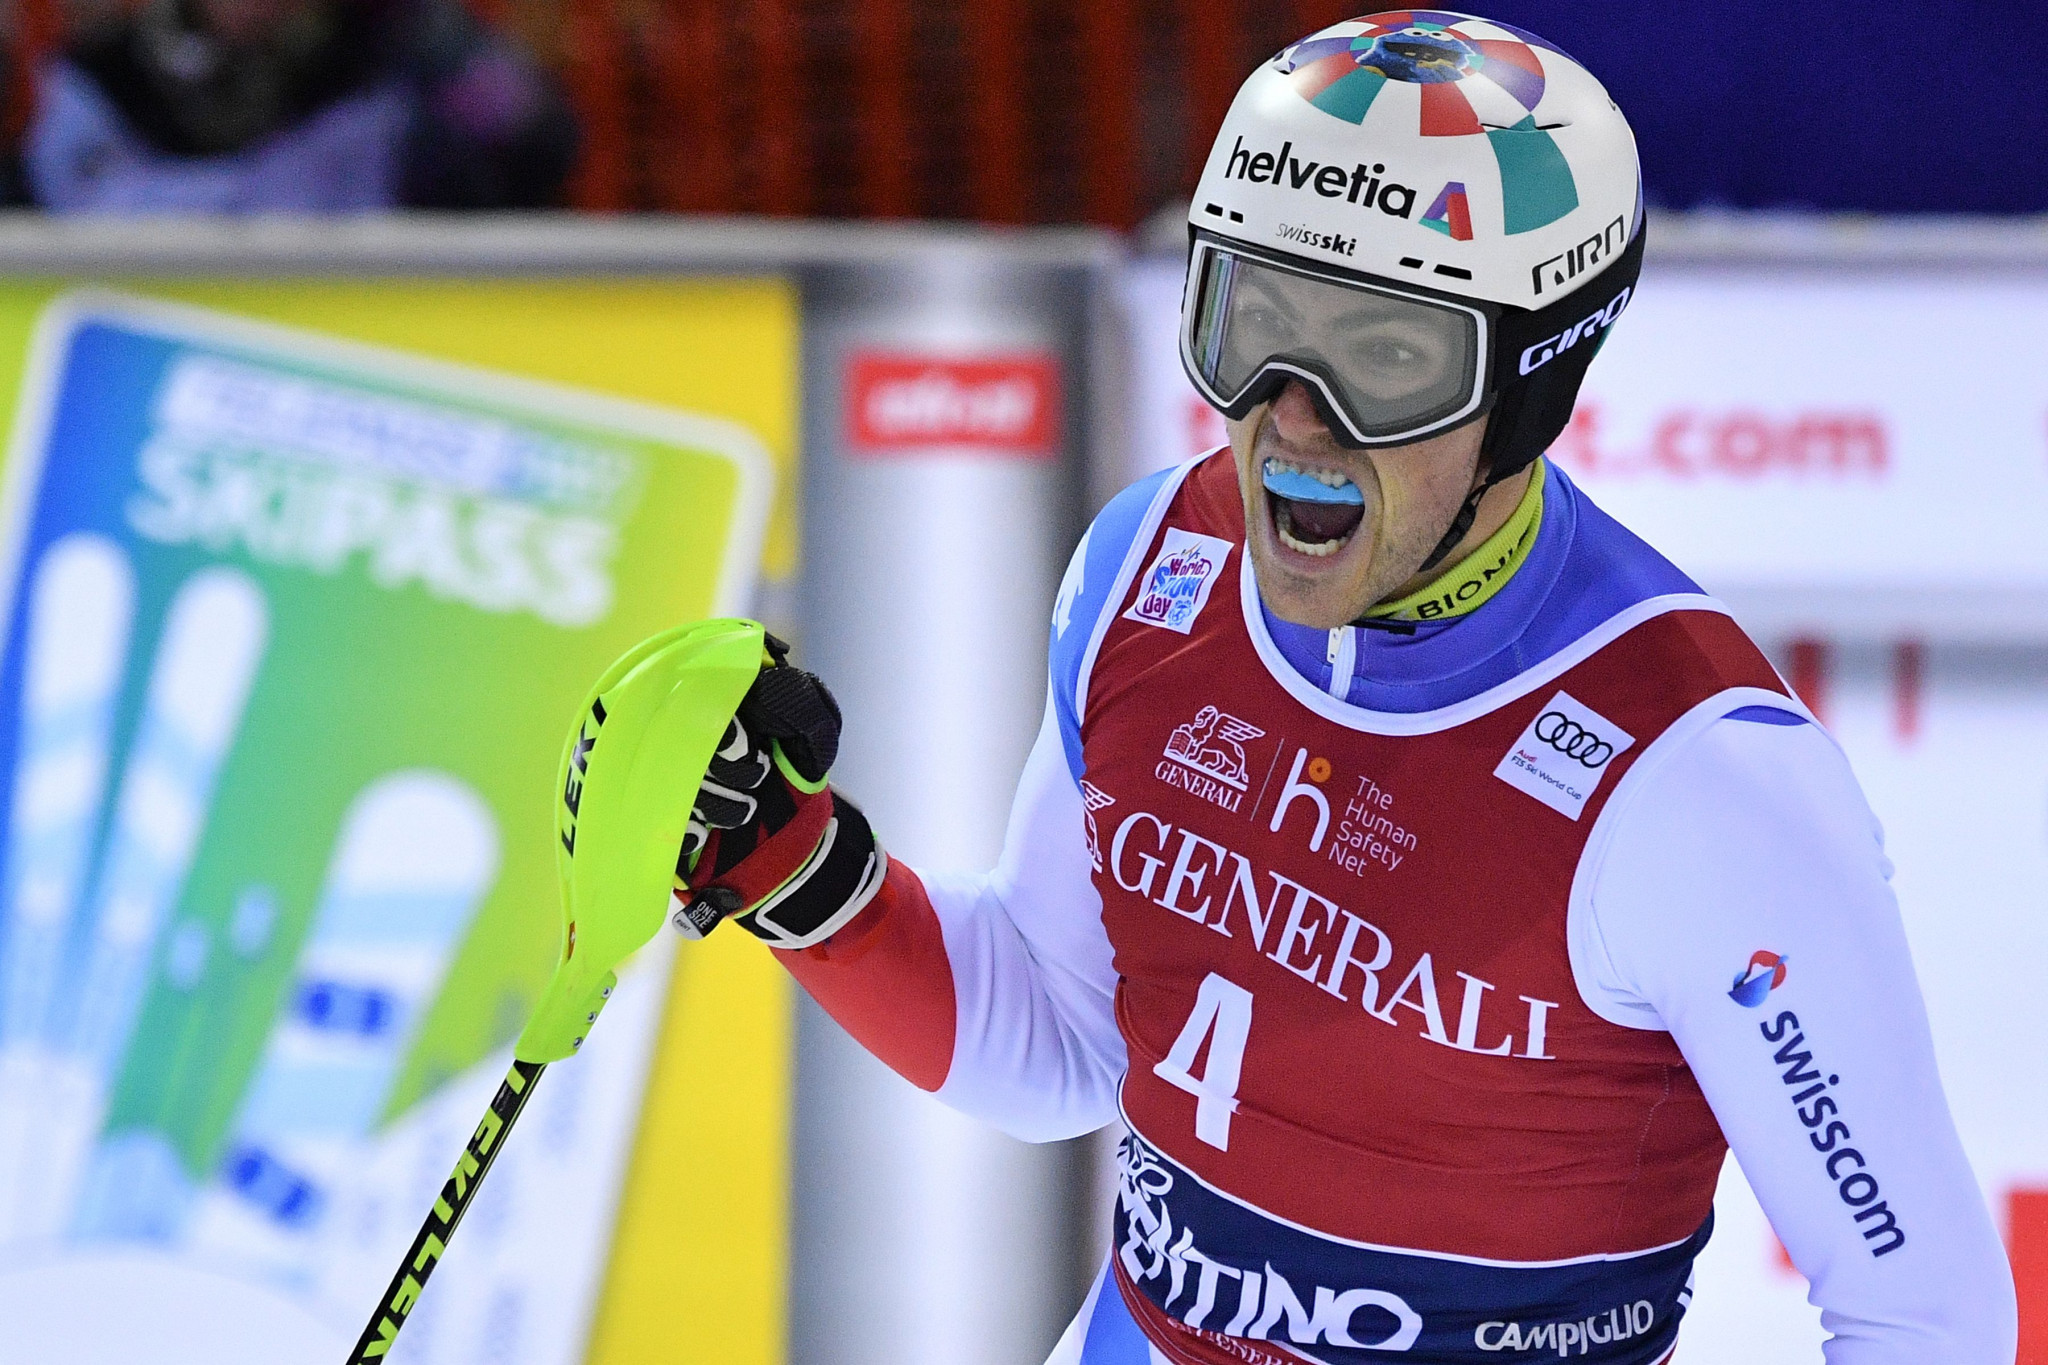 Yule wins men's slalom for second year in row at FIS Alpine Skiing World Cup in Madonna di Campiglio